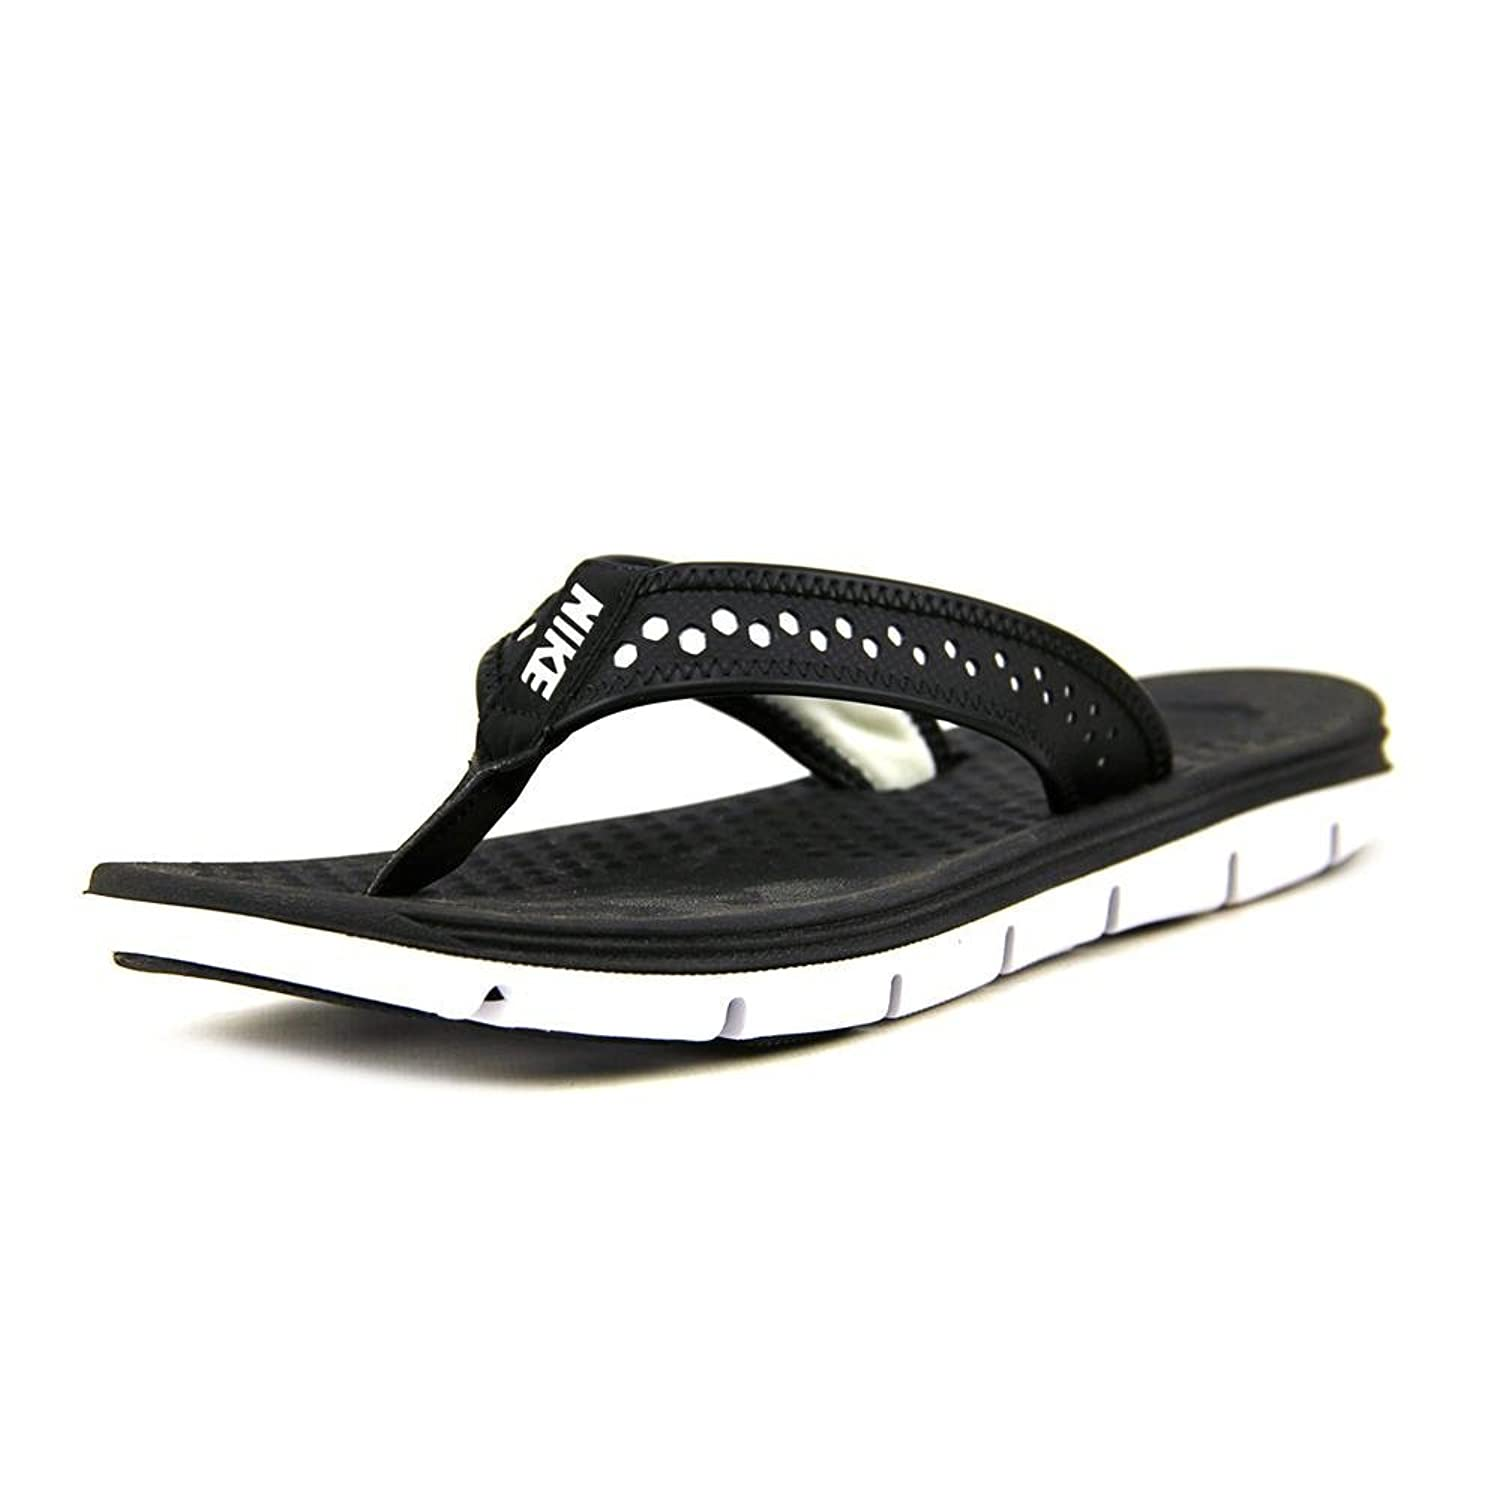 for comforter comfort thong womens solay by black sandals sss nike shop